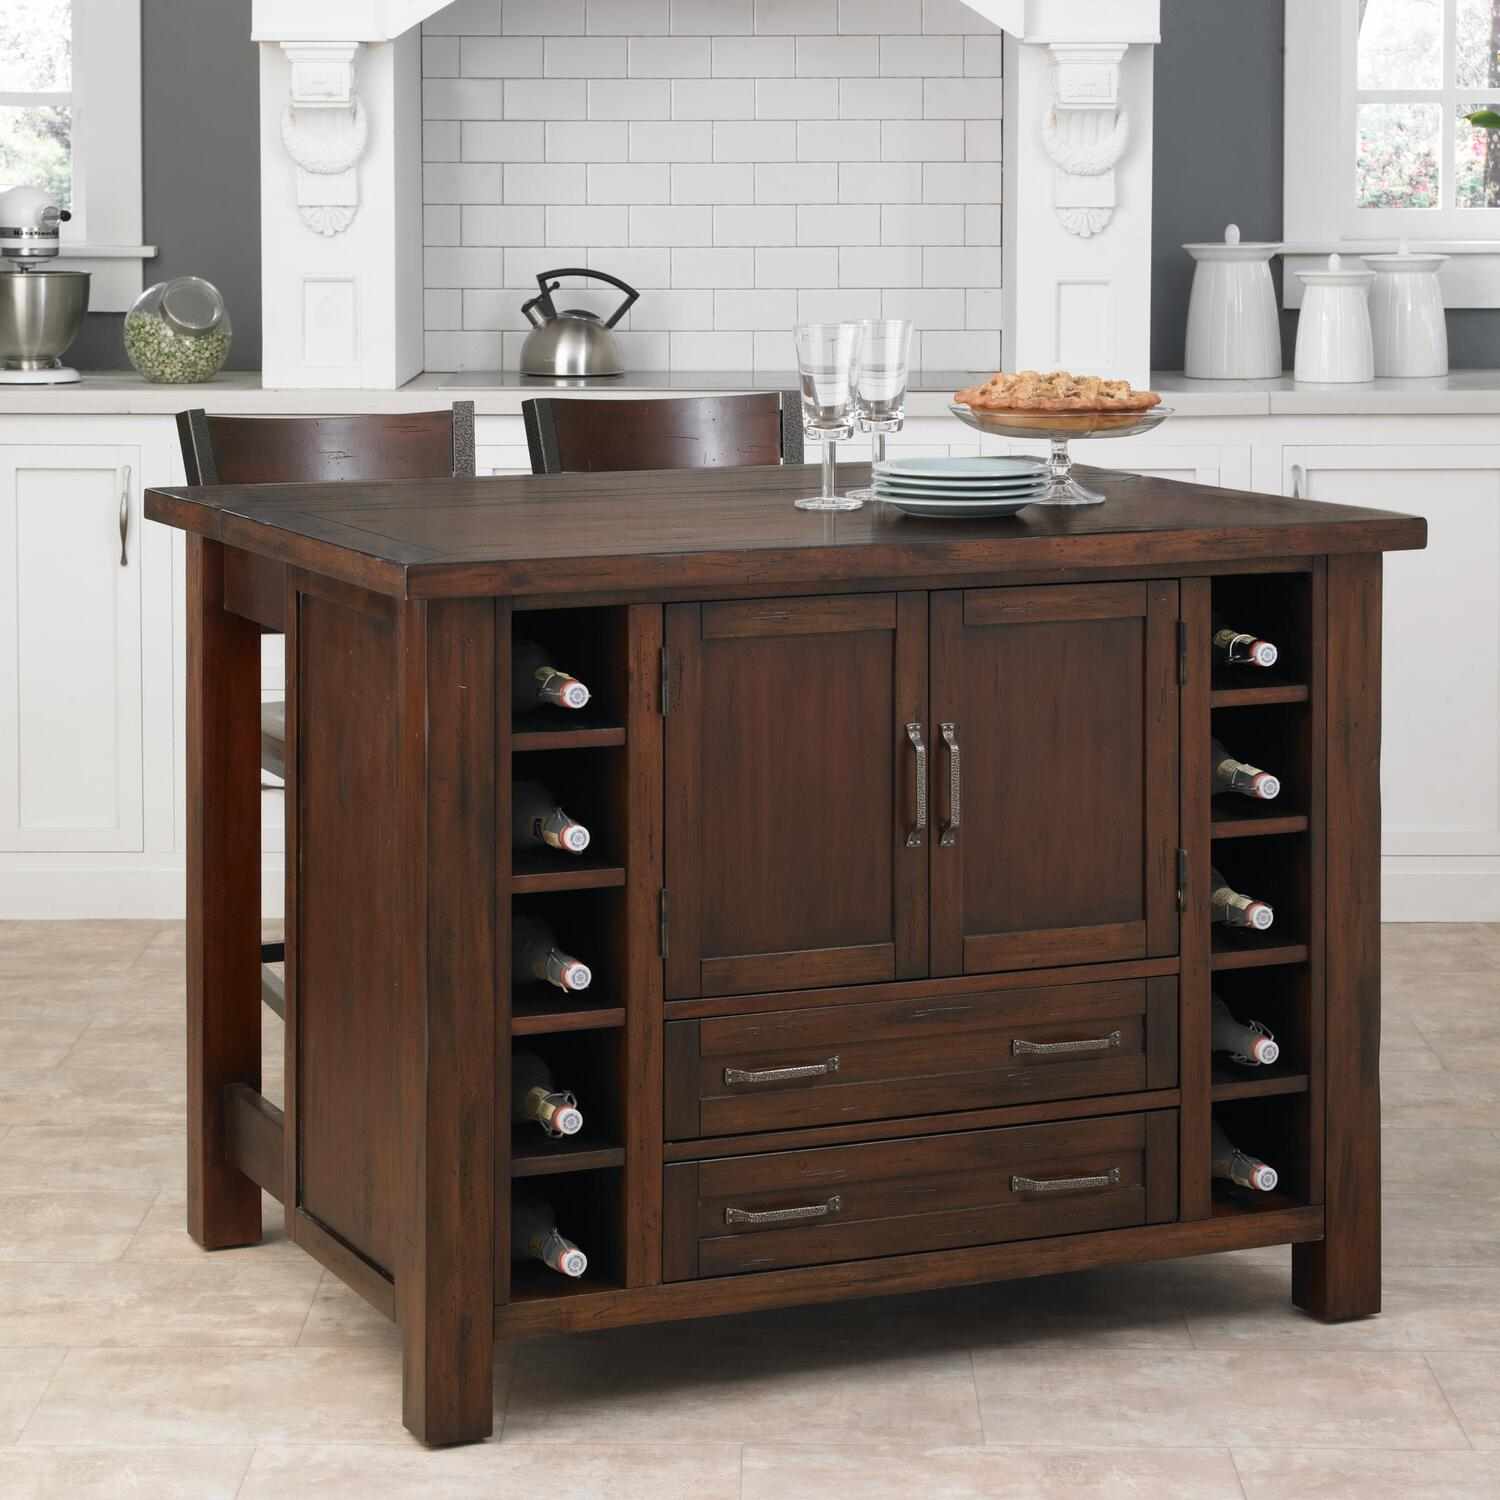 Stools Kitchen Islands Home Styles Cabin Creek Kitchen Island With Breakfast Bar